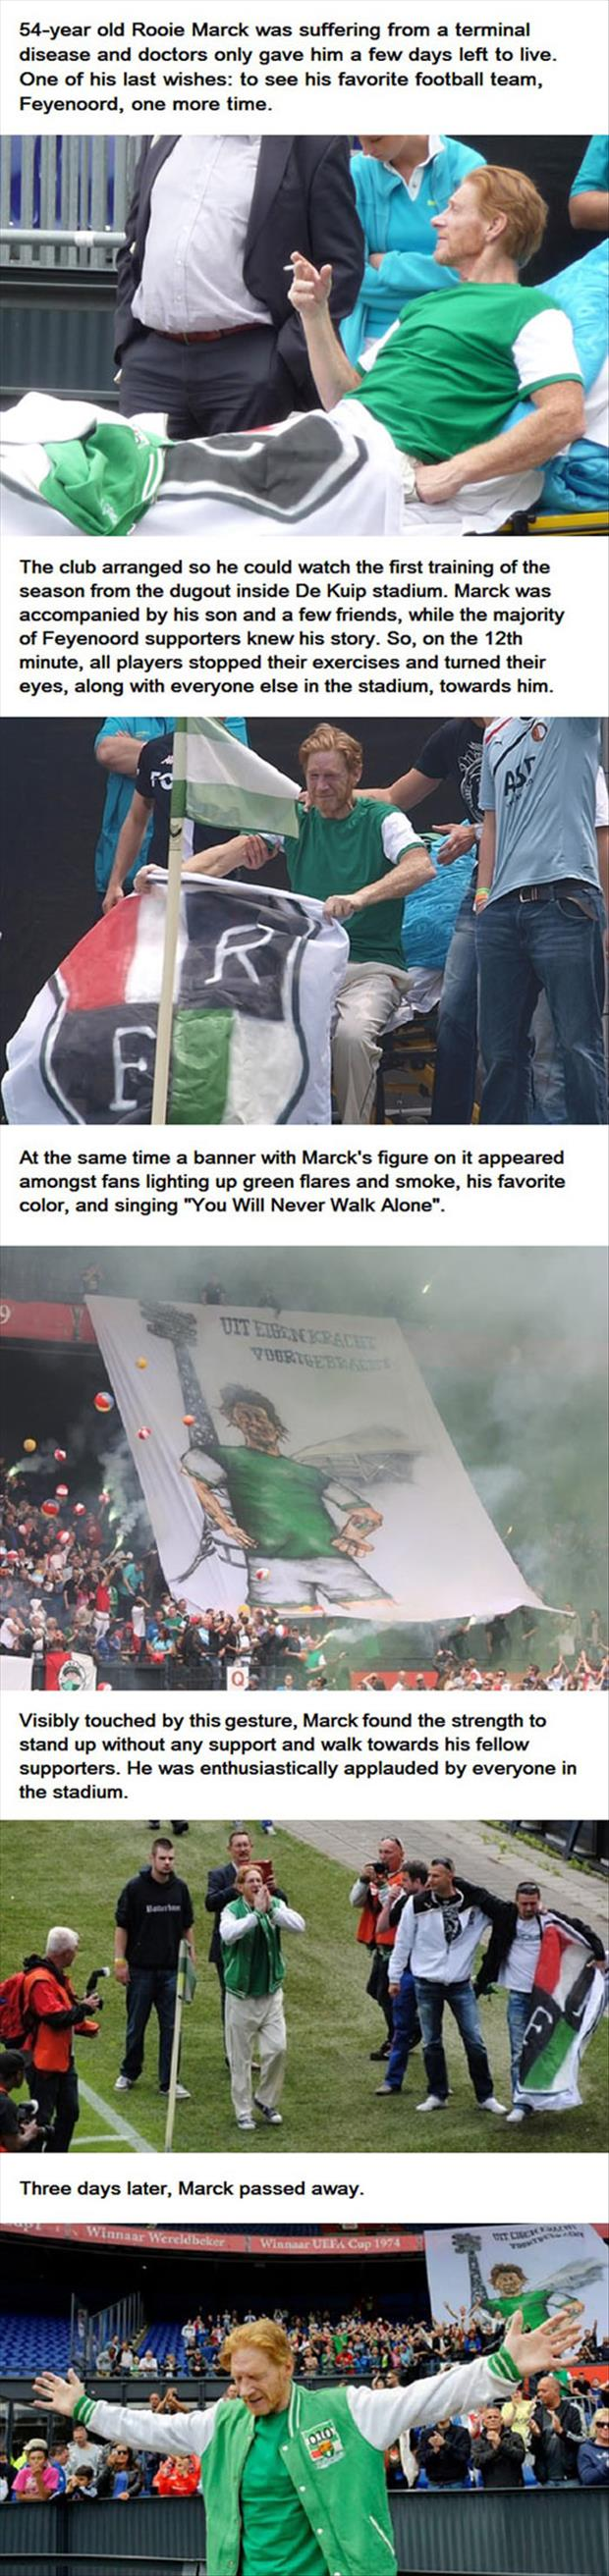 cool-dying-man-story-Feyenoord